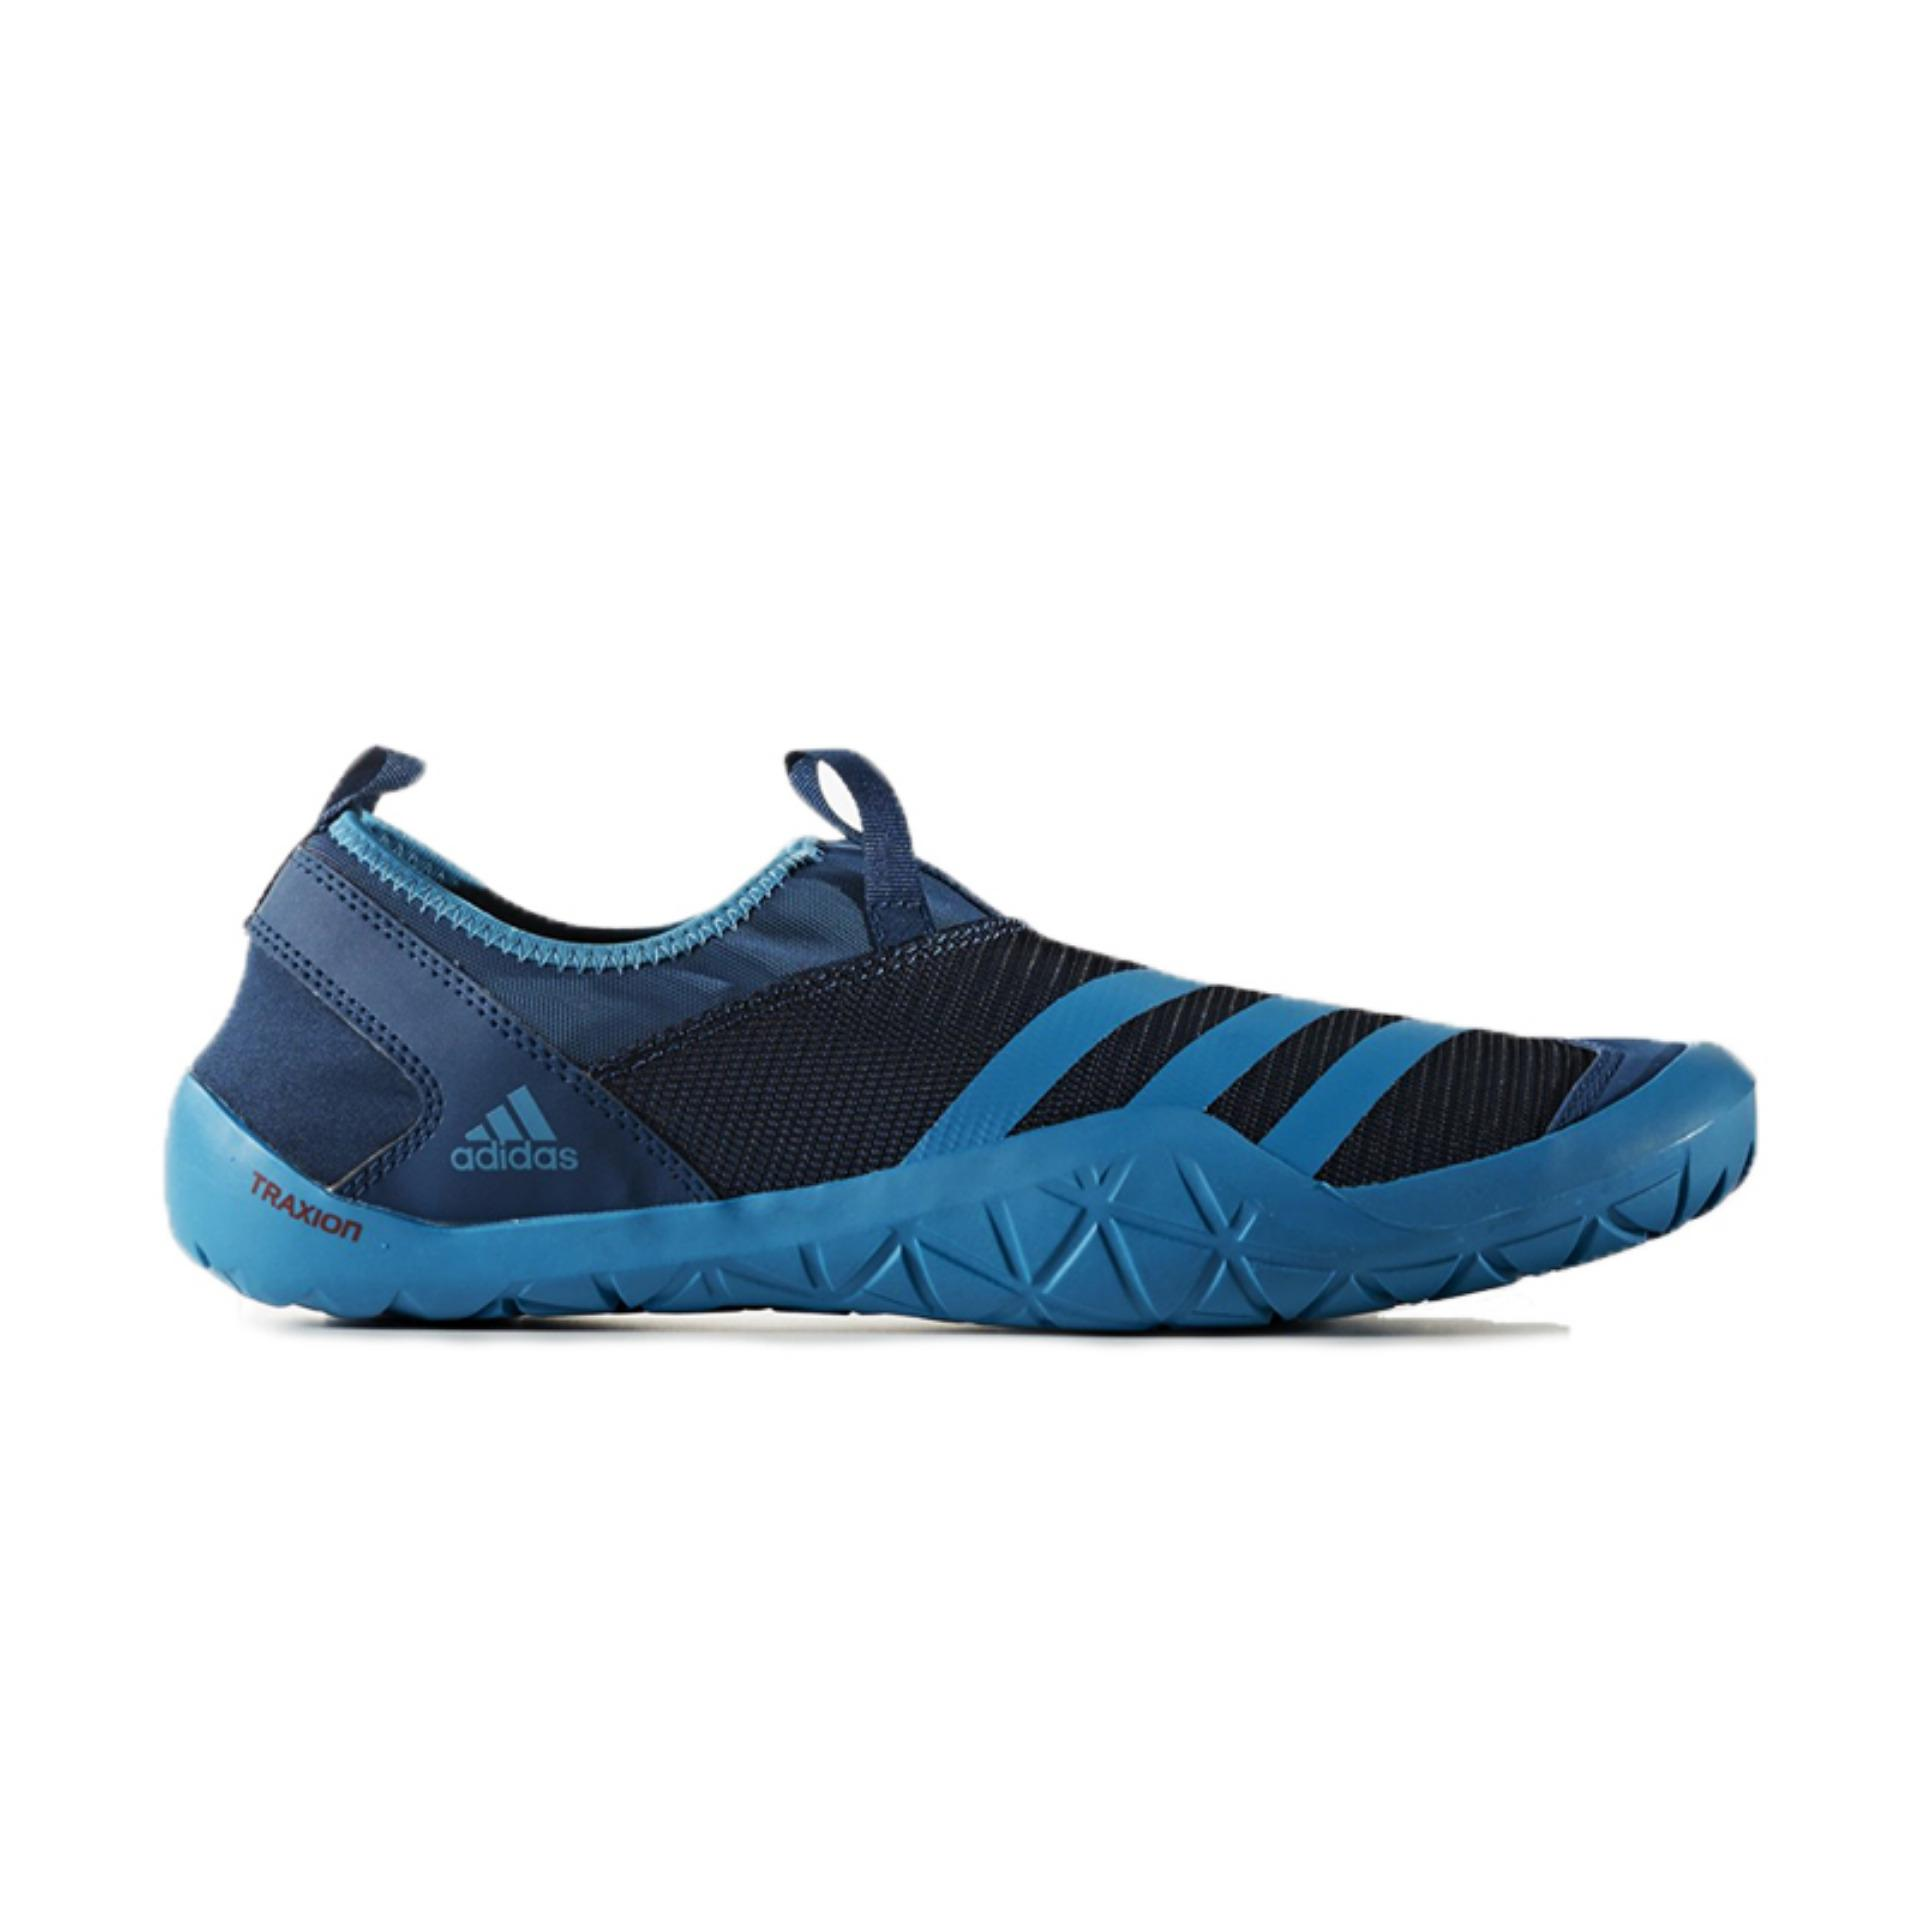 Harga Men S Shoes Sneakers Adidas Climacool Jawpaw Slip On S80816 Biru Origin